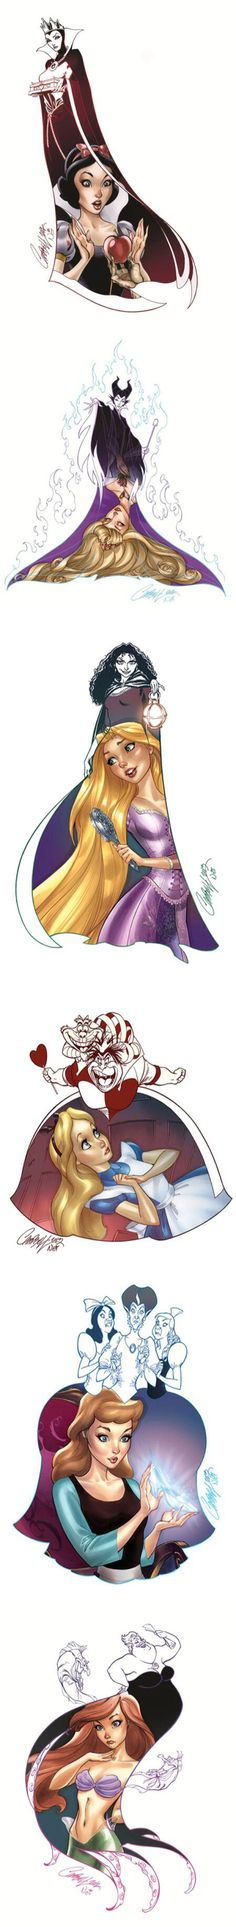 omg i want the evil queen and snow white!!!! #badass